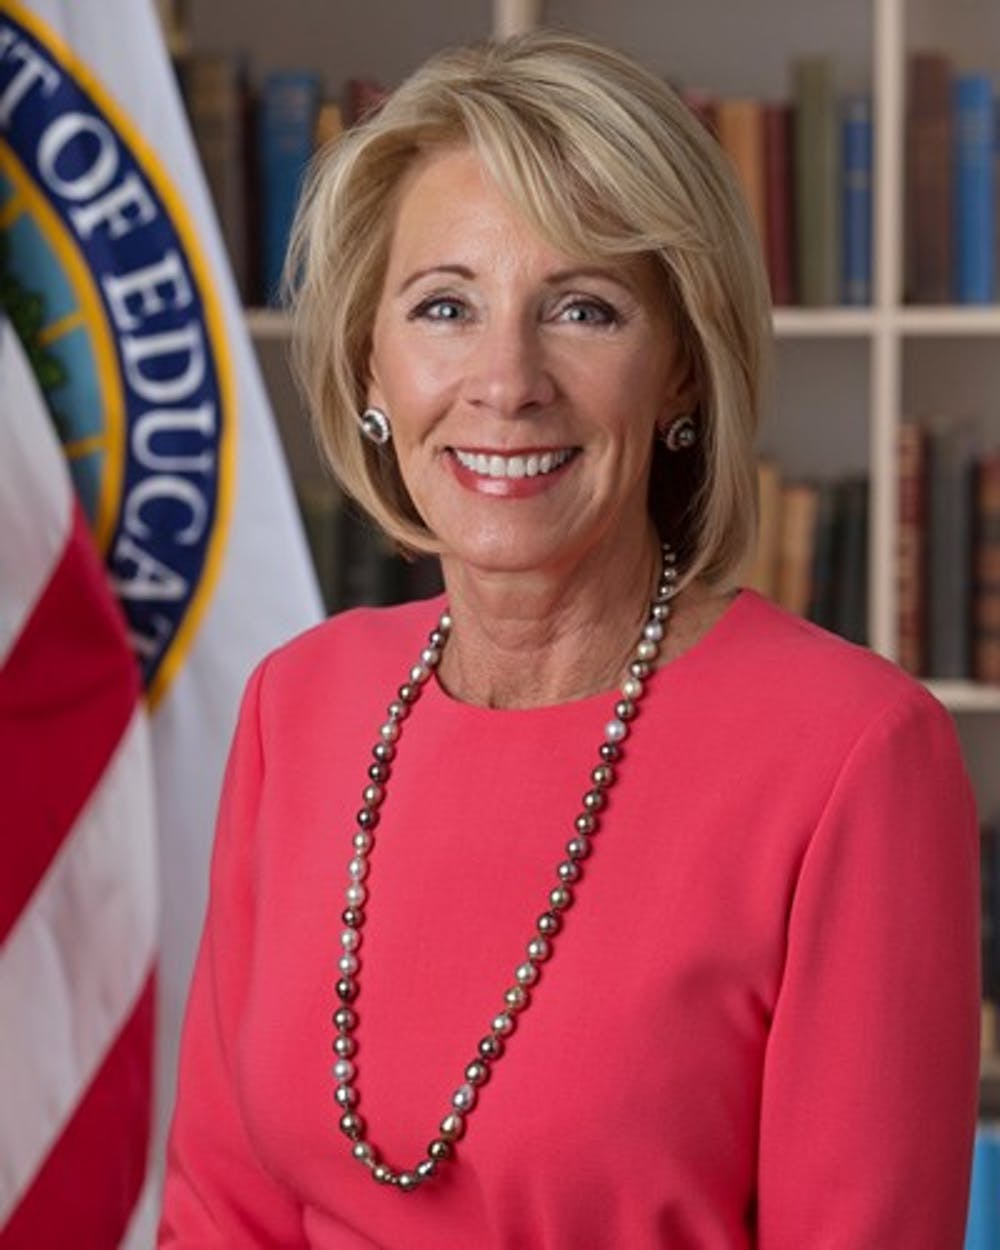 Betsy DeVos is the U.S. Secretary of Education. Photo: Georgia Department of Education